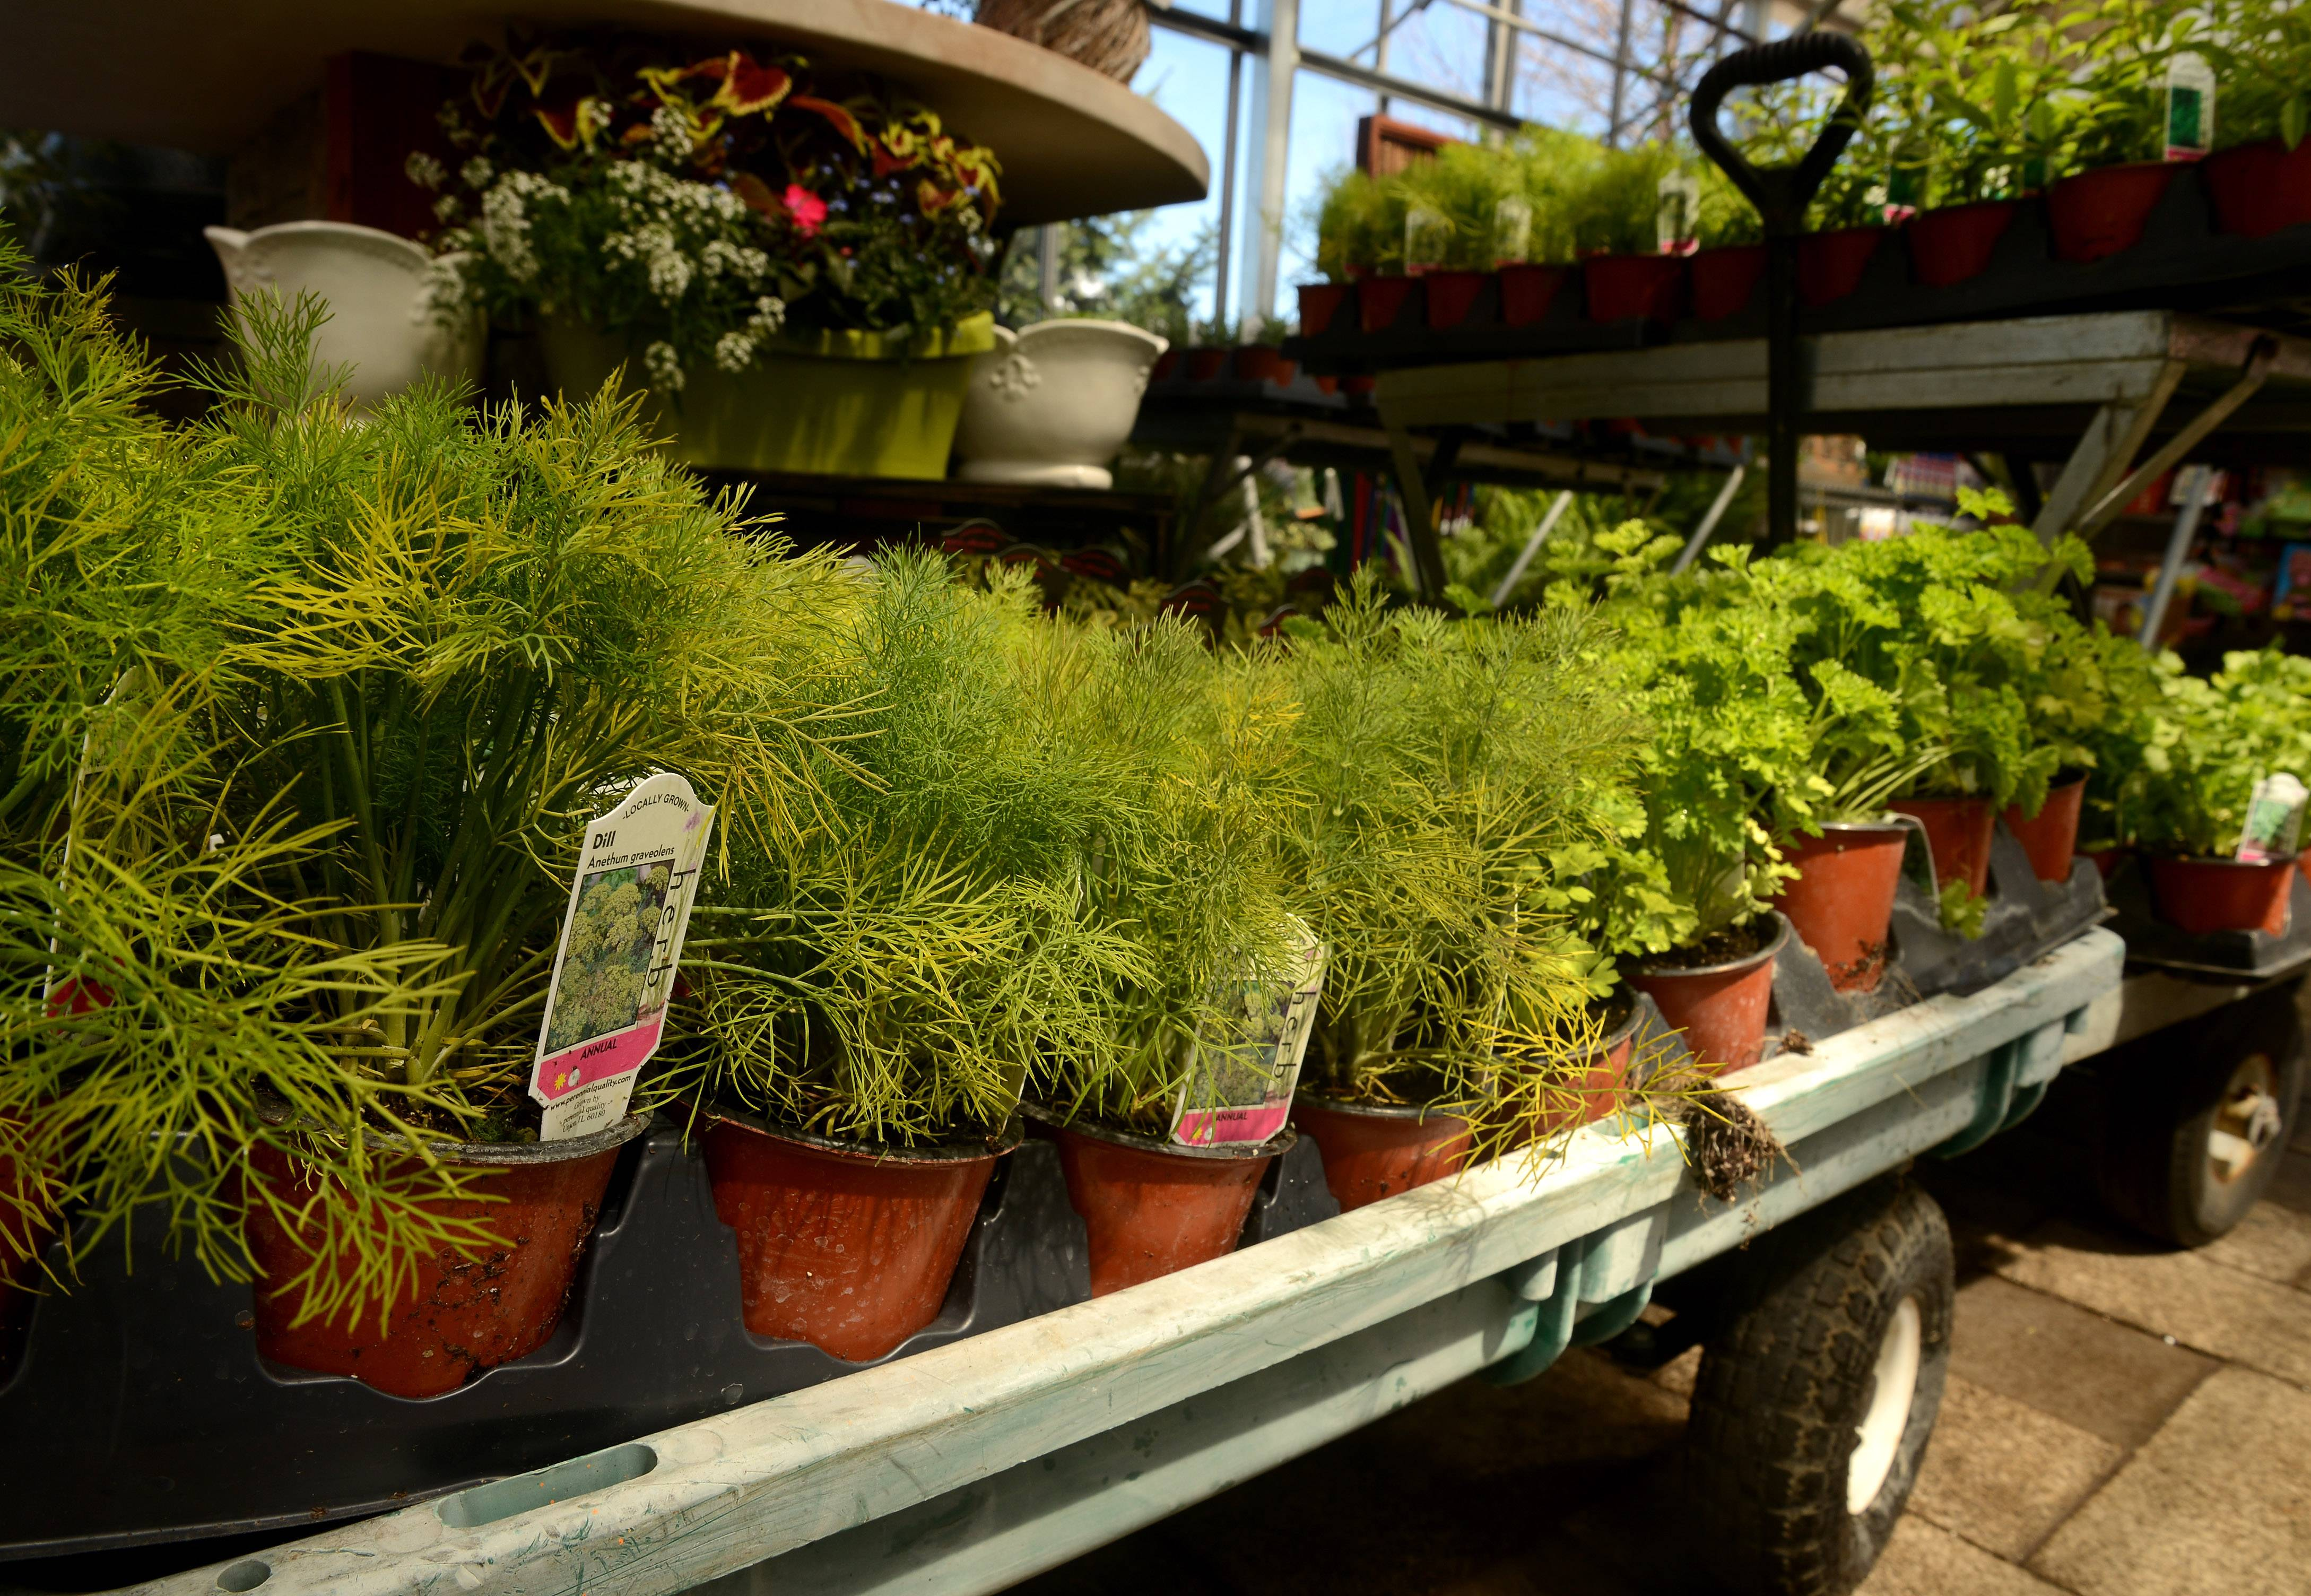 Dill is among other herbs on an herb cart at Lurvey's Garden Center in Des Plaines.